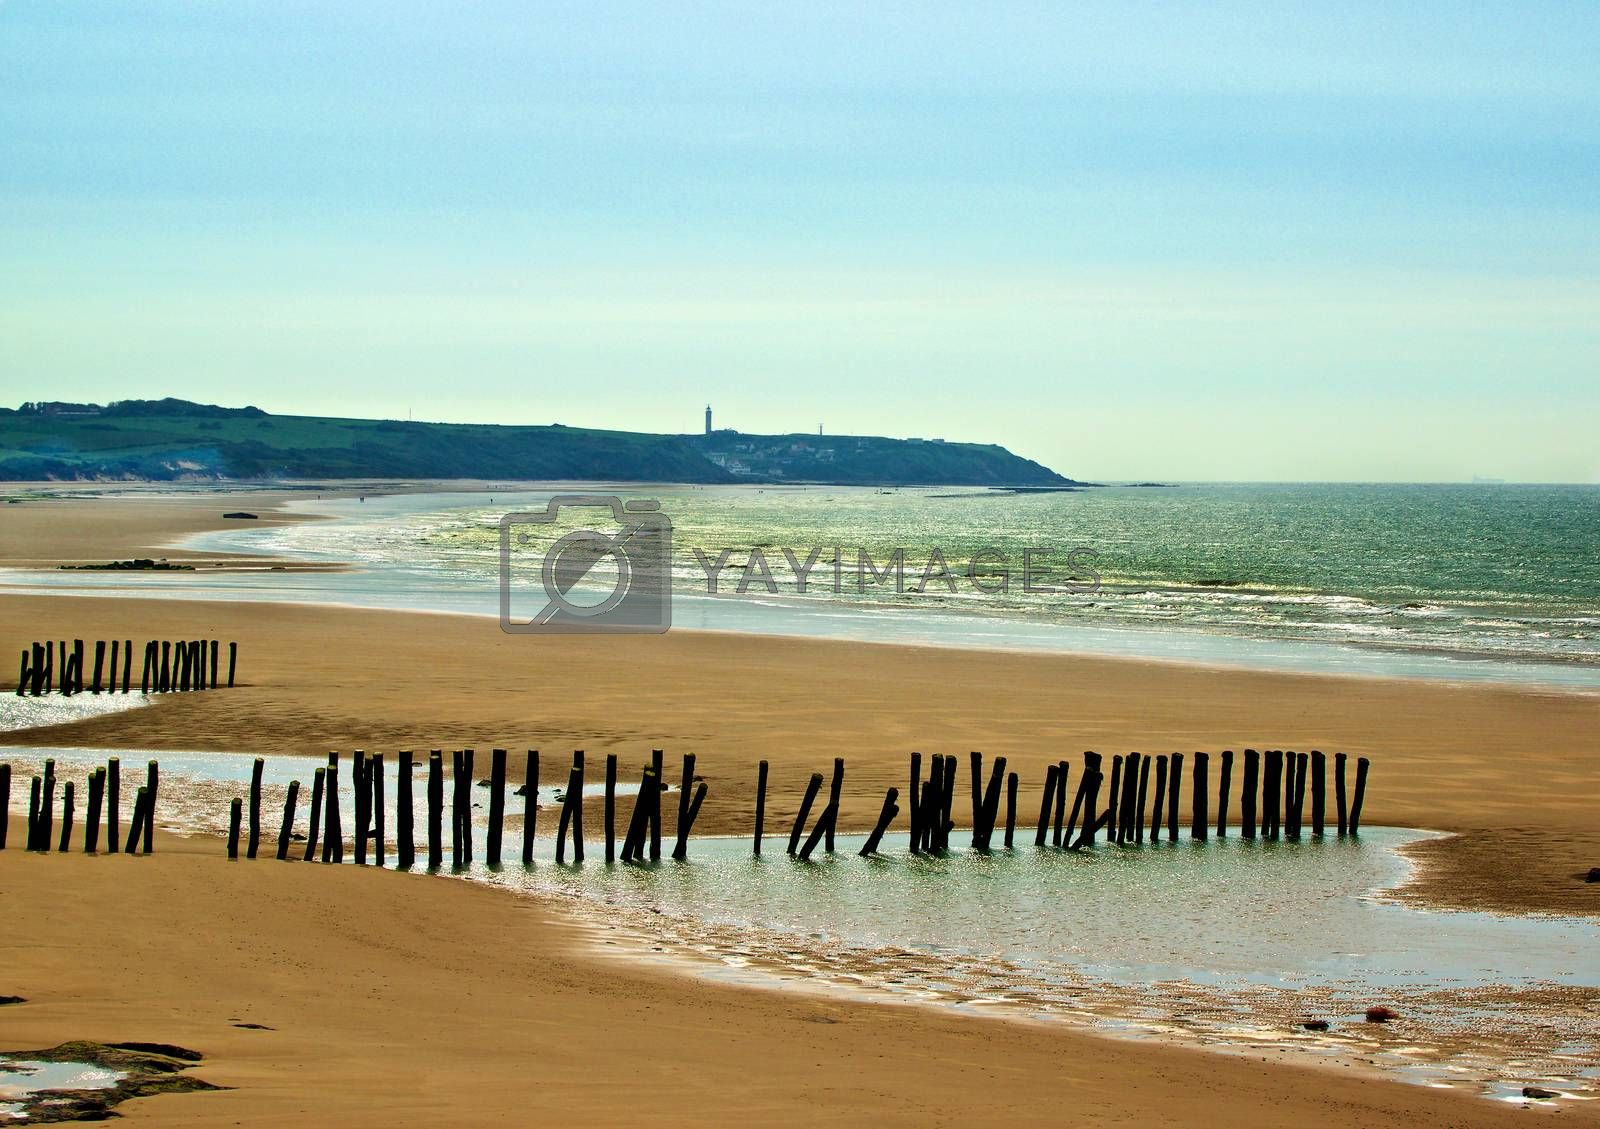 Landscape of French Atlantic Coast with Wooden Breakwaters Outdoors near Sangatte, France